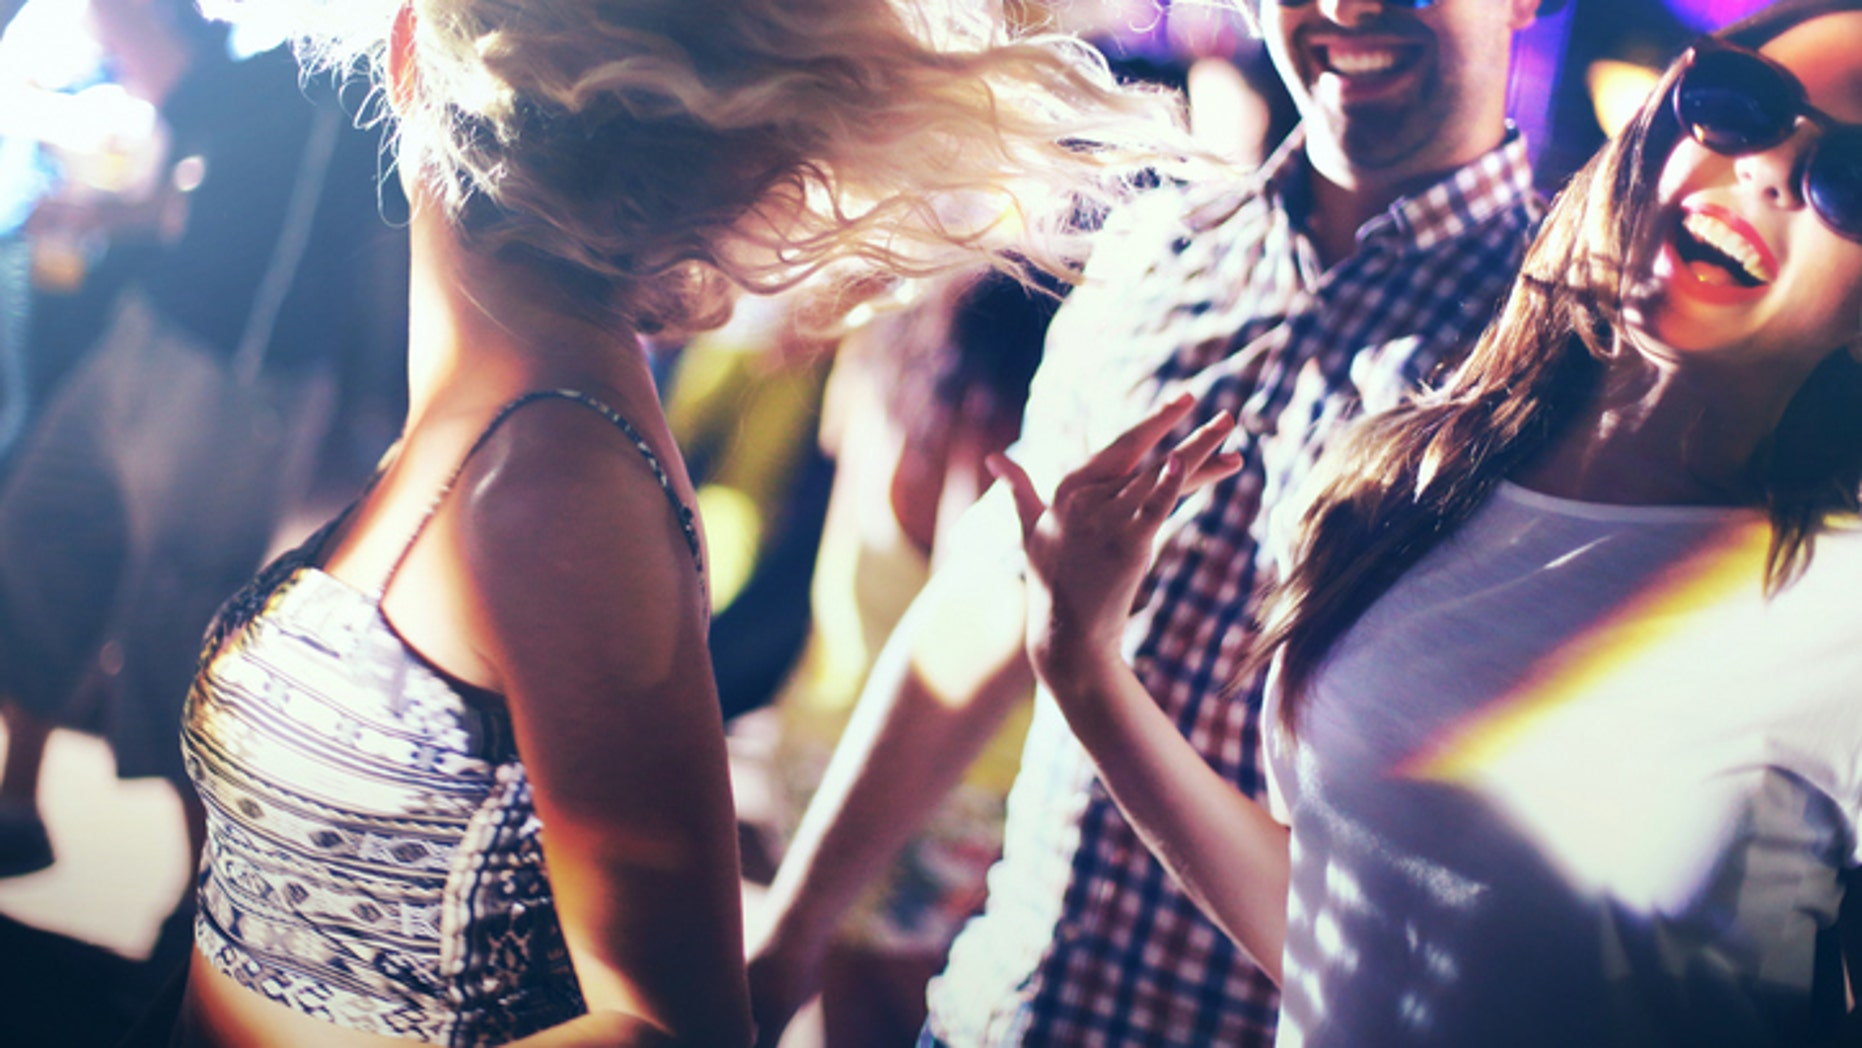 Club owners in Brussels have to pay taxes for dancing patrons.